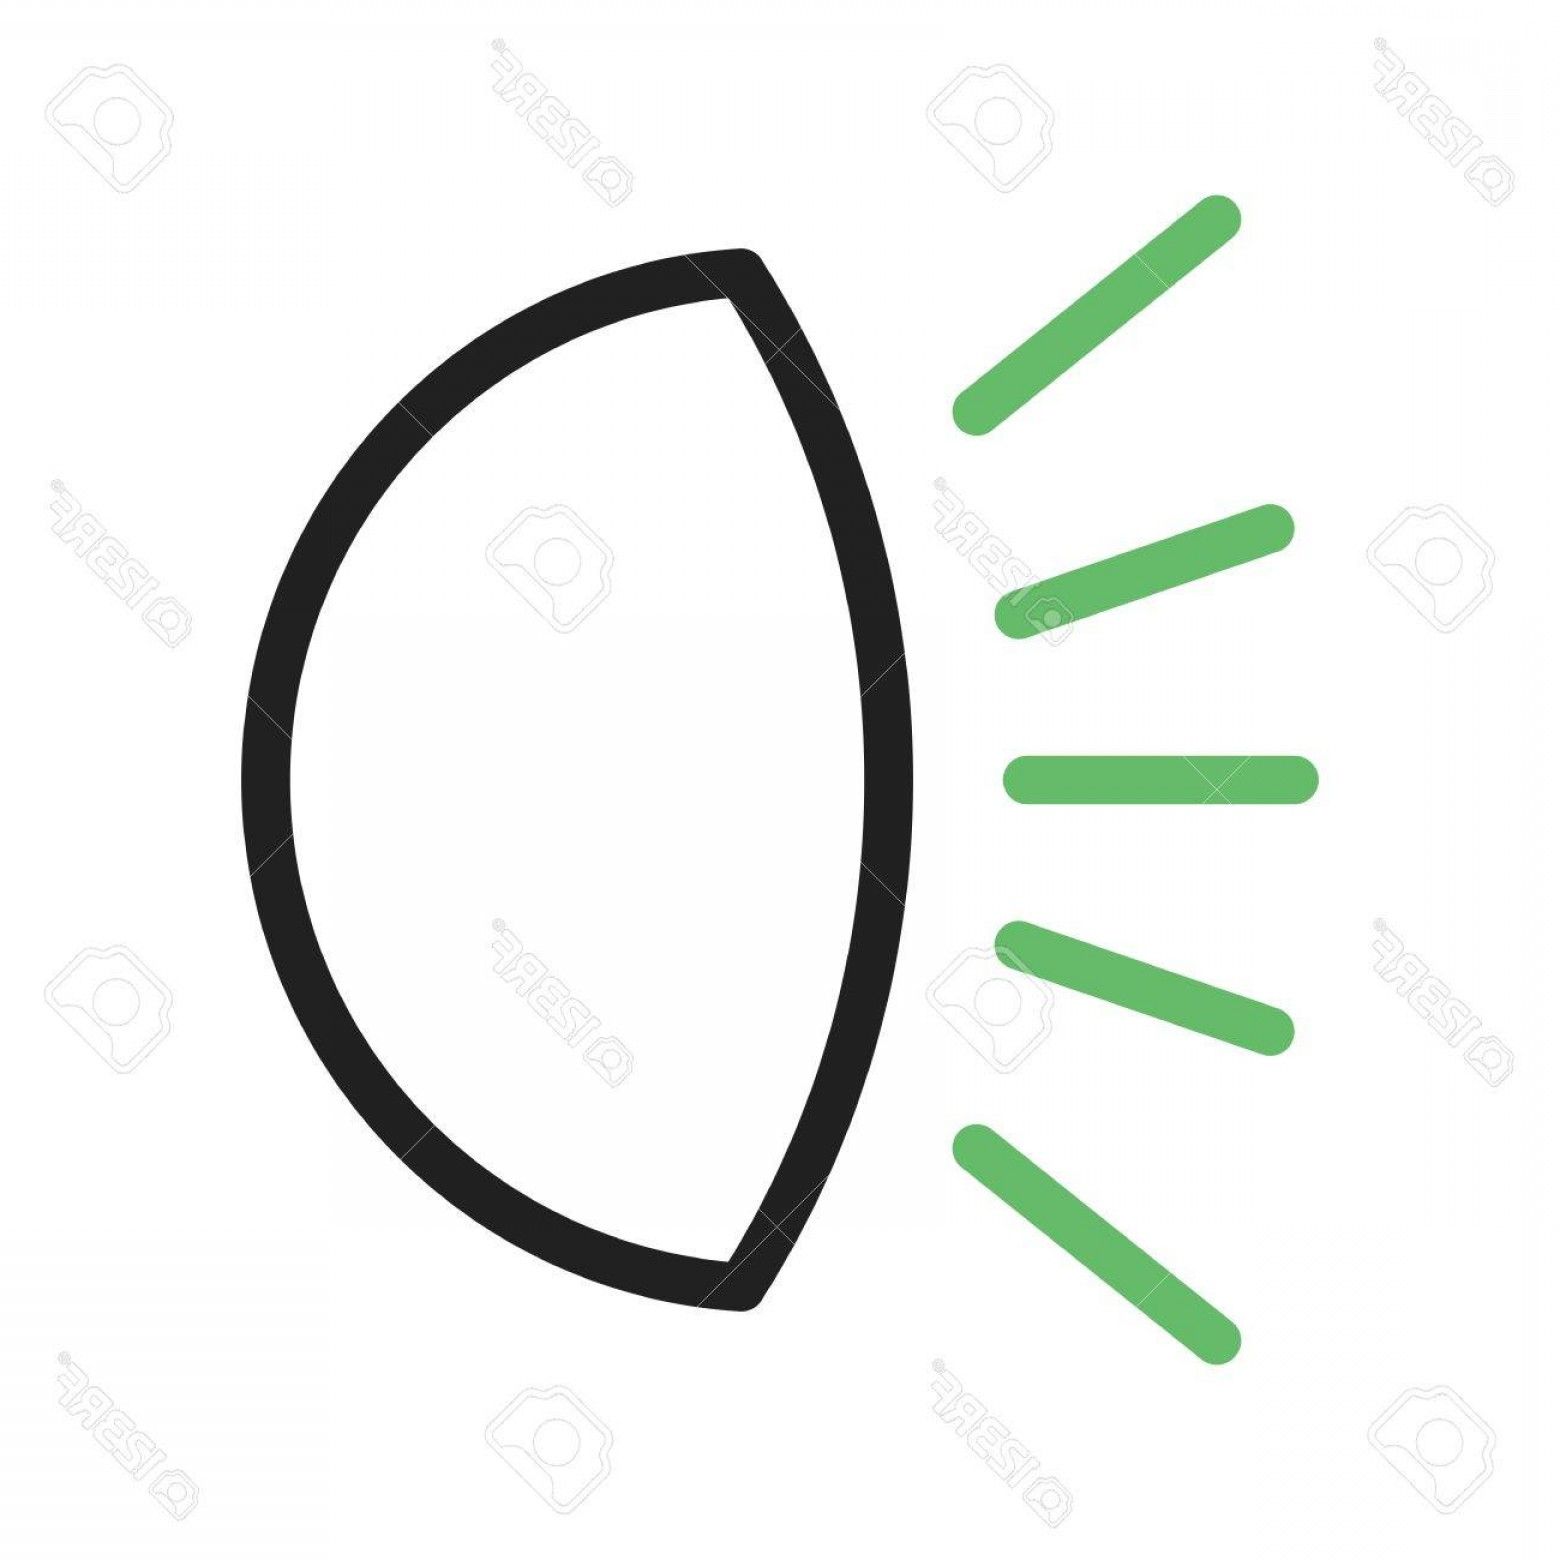 Vector Round Headlight: Photostock Vector Car Headlight Light Icon Vector Image Can Also Be Used For Car Servicing Suitable For Use On Web App